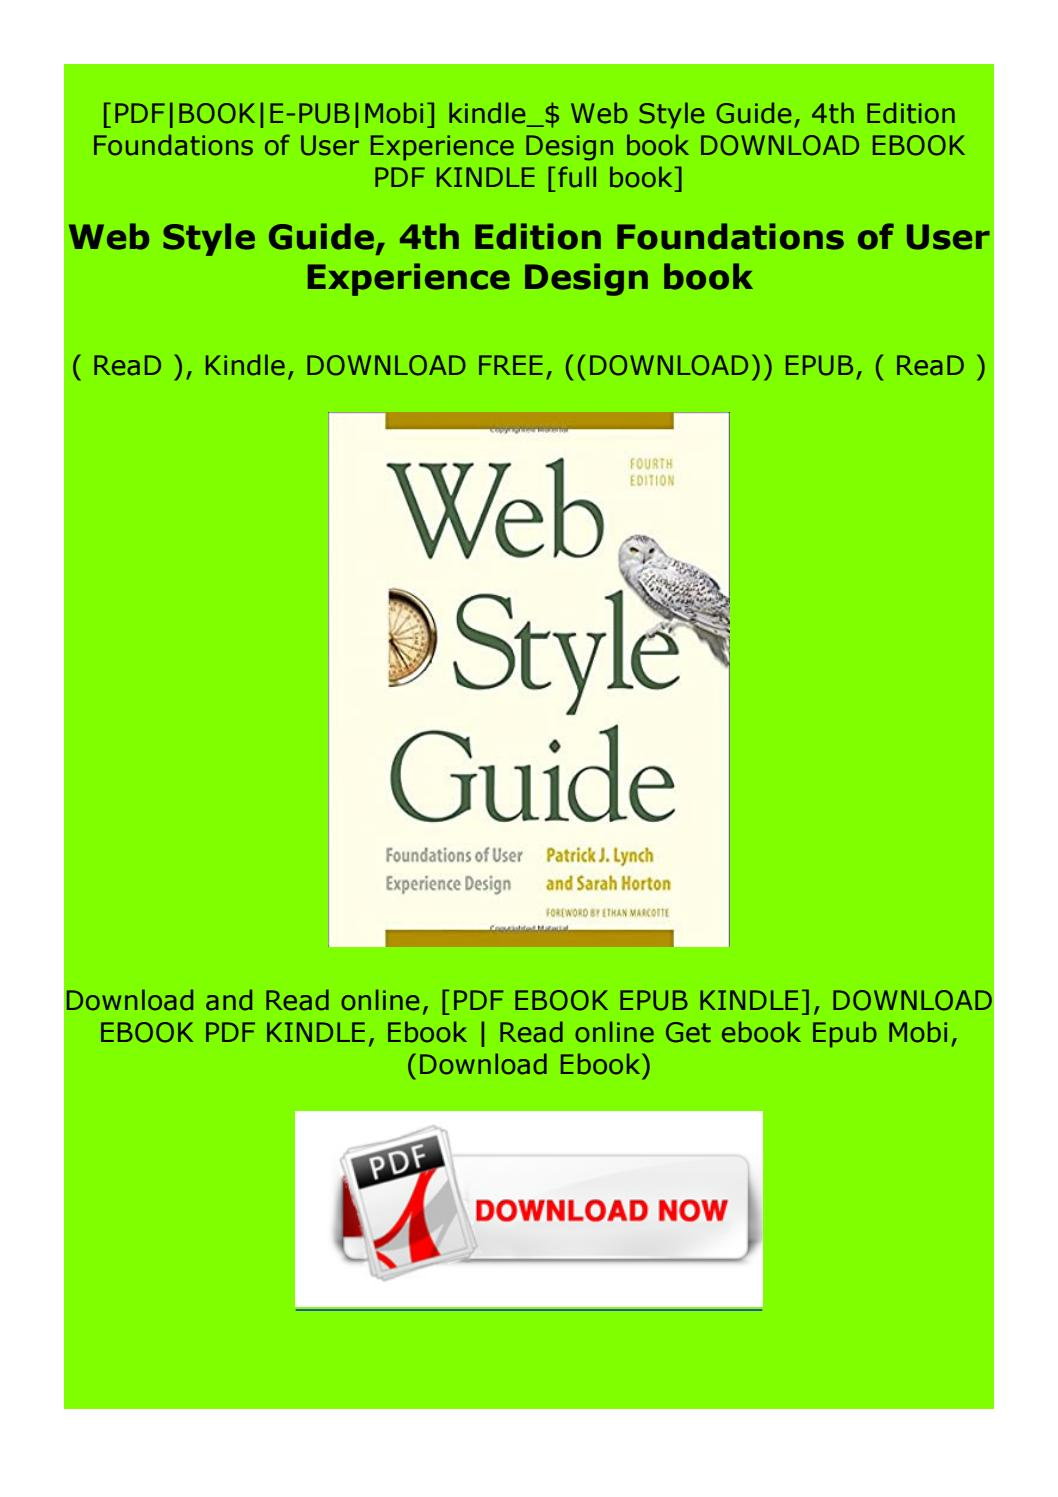 Read Online Web Style Guide 4th Edition Foundations Of User Experience Design Book By Cszfdrdyrdfgdgs Issuu